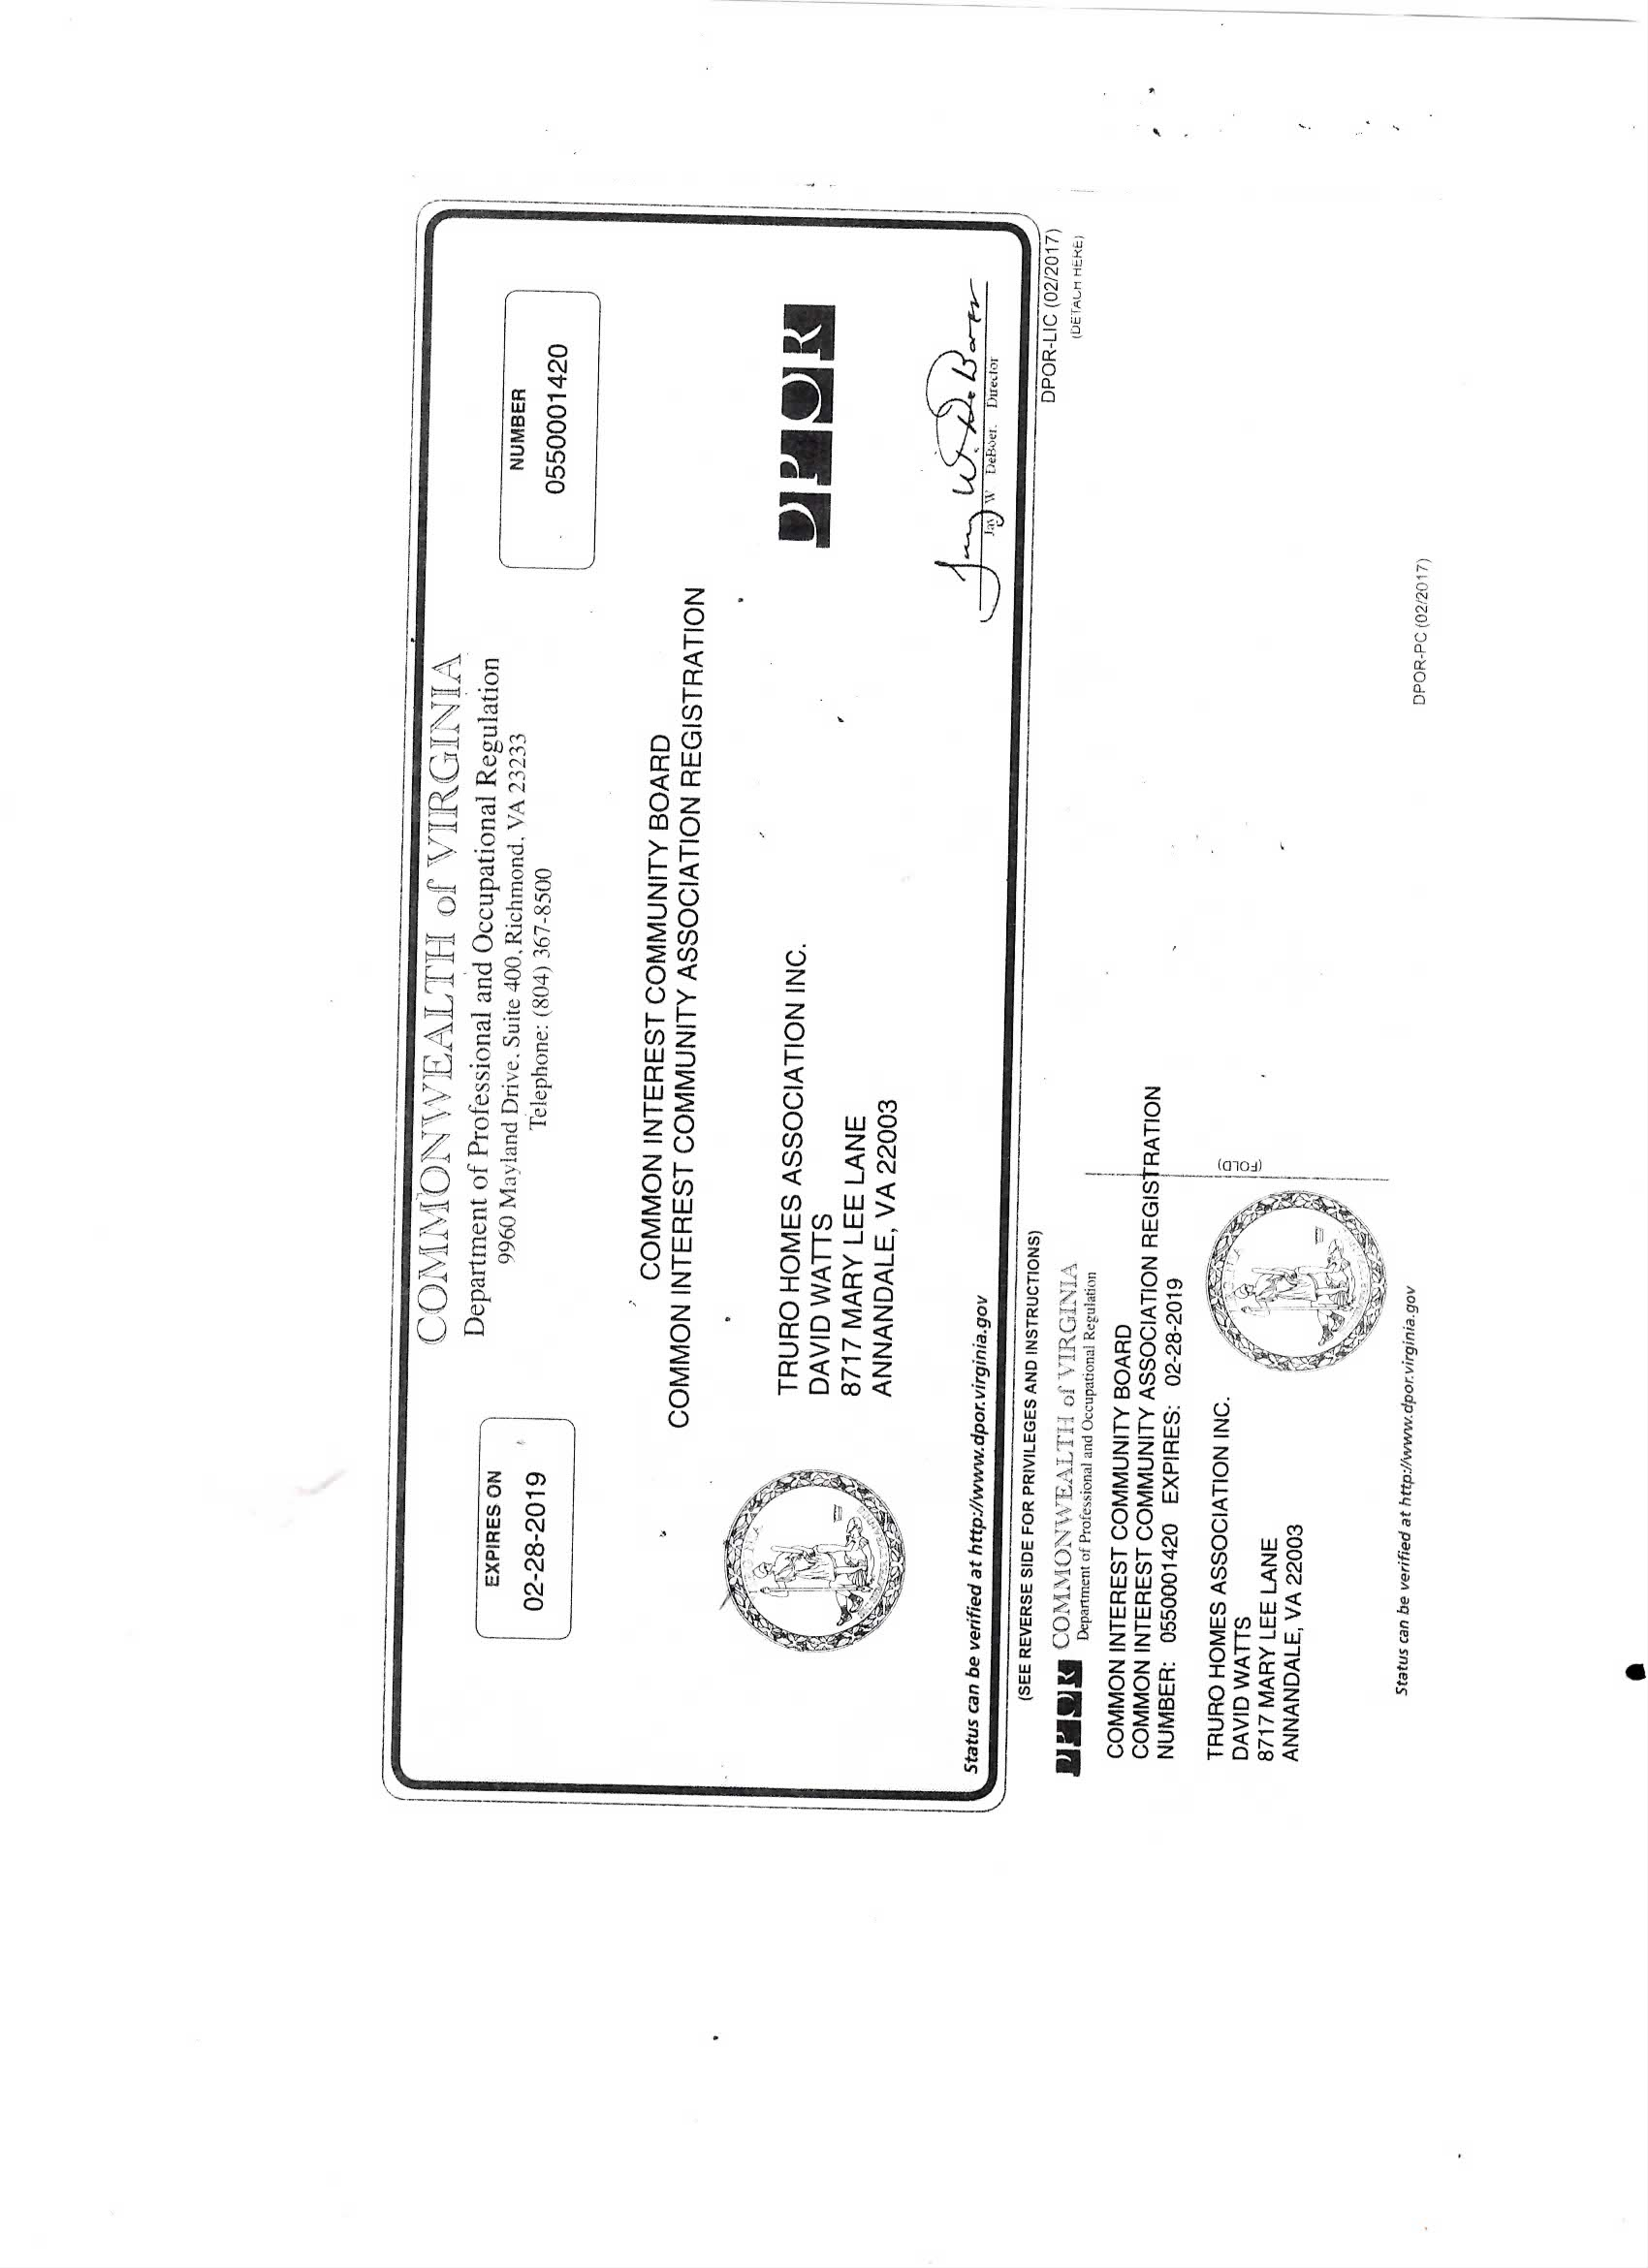 Official Documents